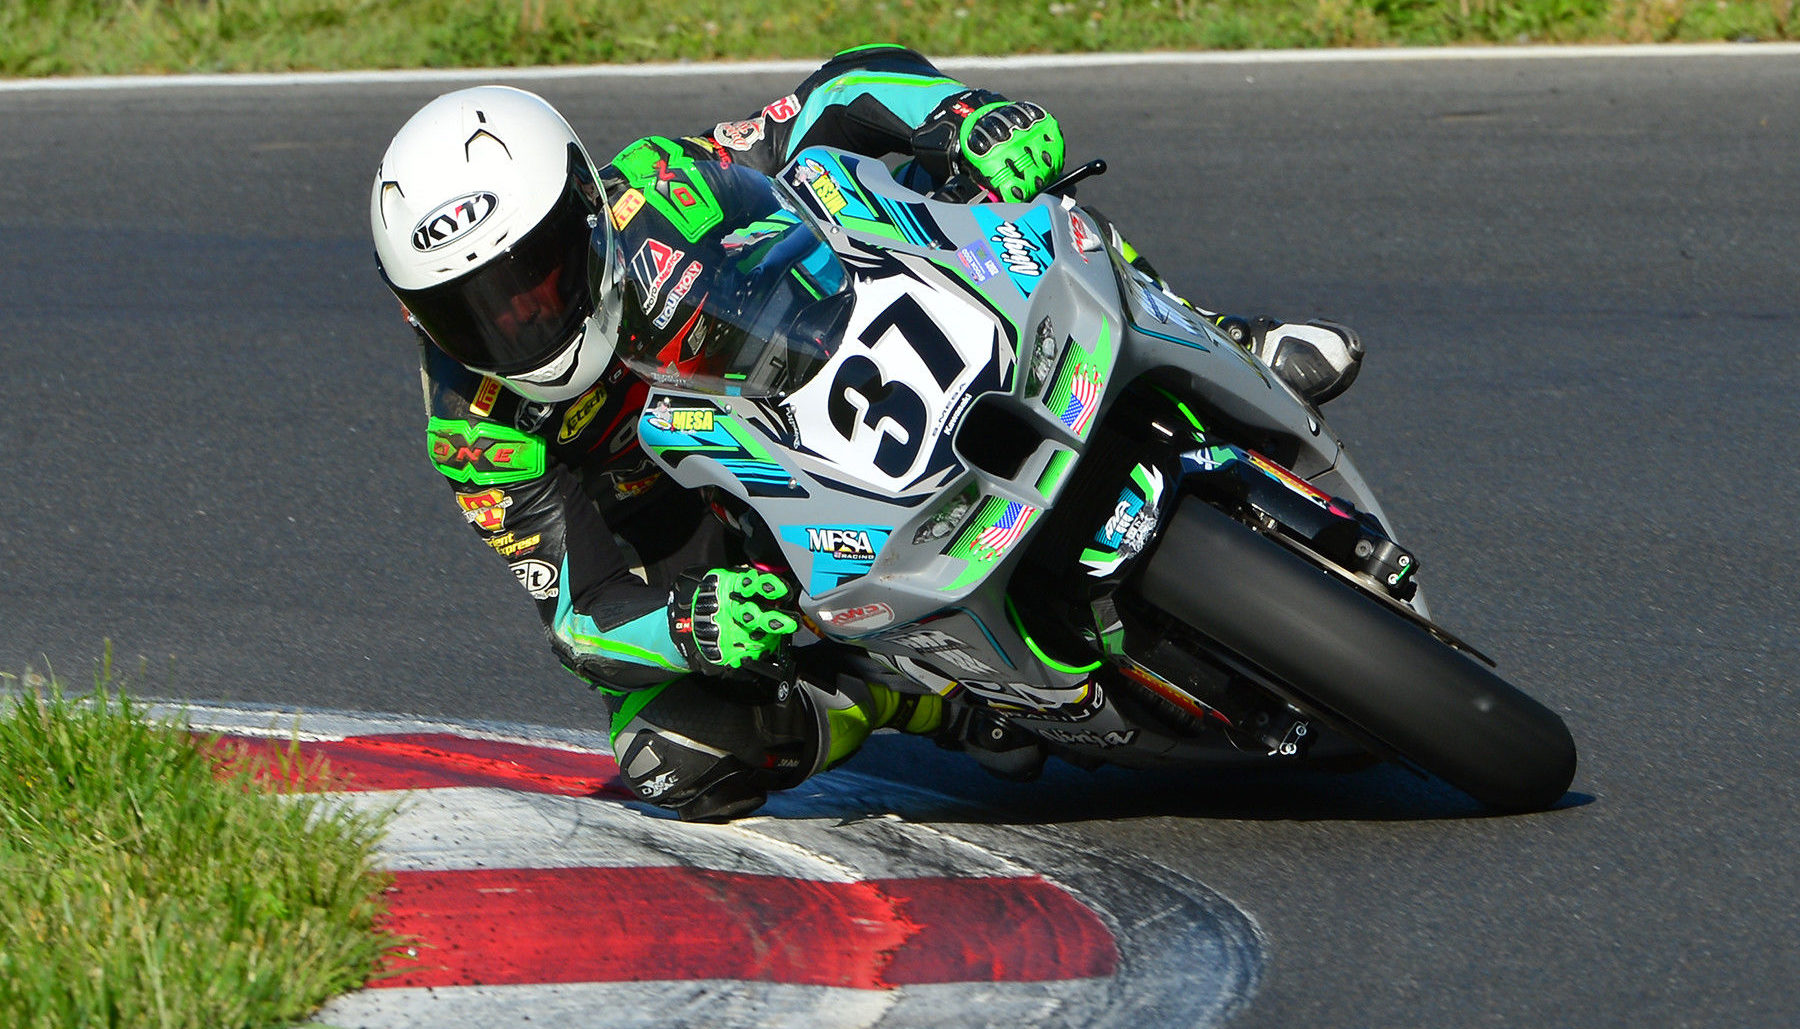 Stefano Mesa (37) in action at Summit Point Motorsports Park. Photo by Lisa Theobald, courtesy ASRA CCS.